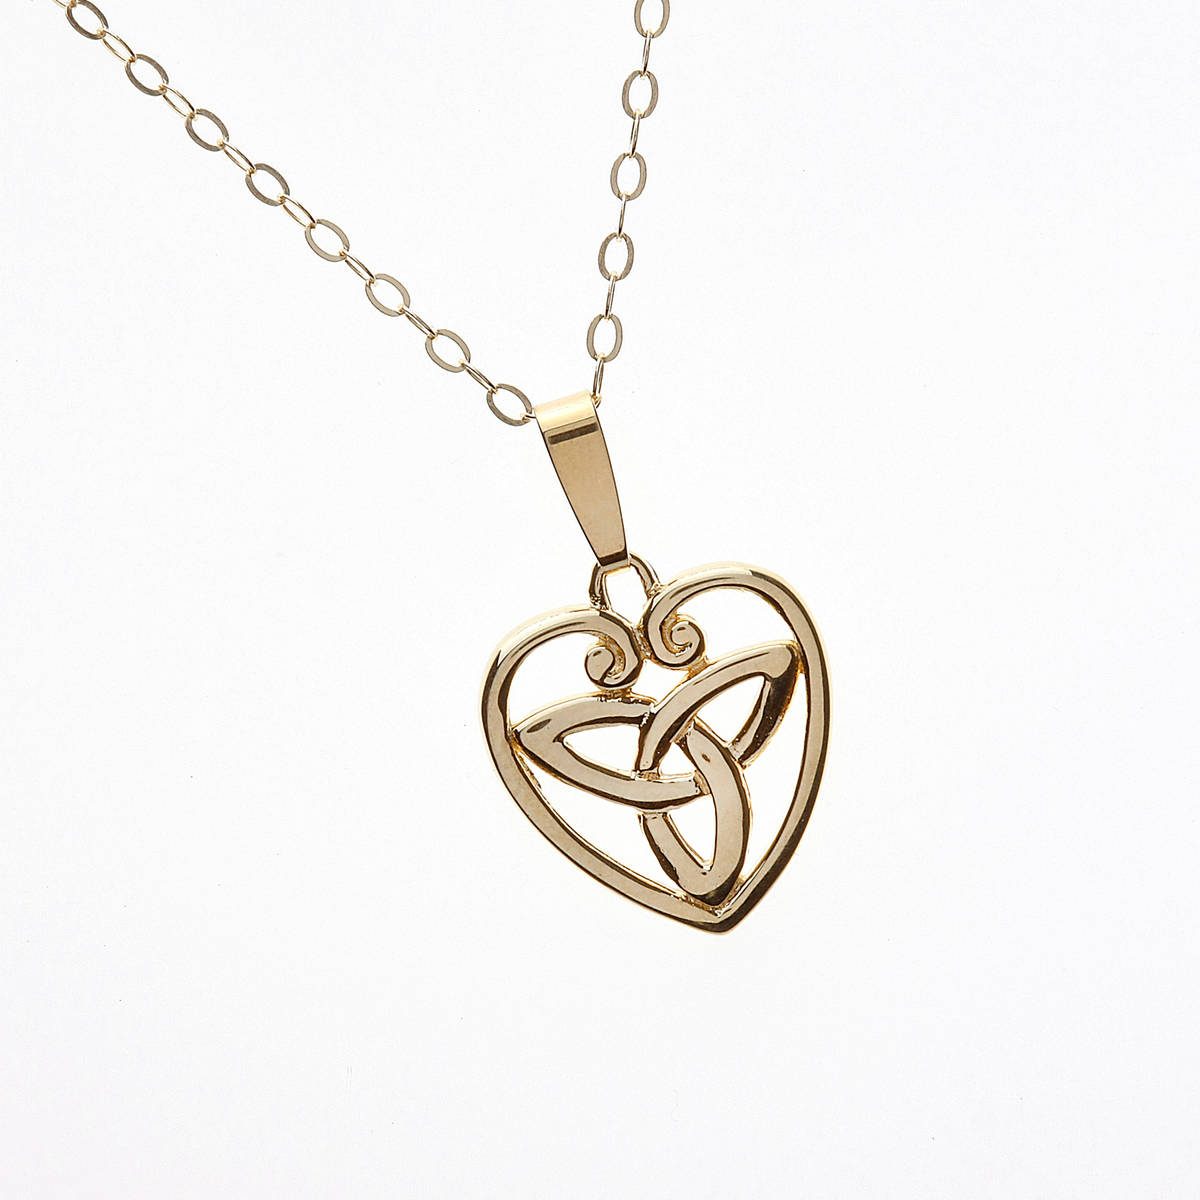 10ct Y/gold Trinity Knot Inside Scolloped Open Heart Pendant 18 Chain  a classic example of the beautiful celtic friendship knot encased in a scalloped outer rim.